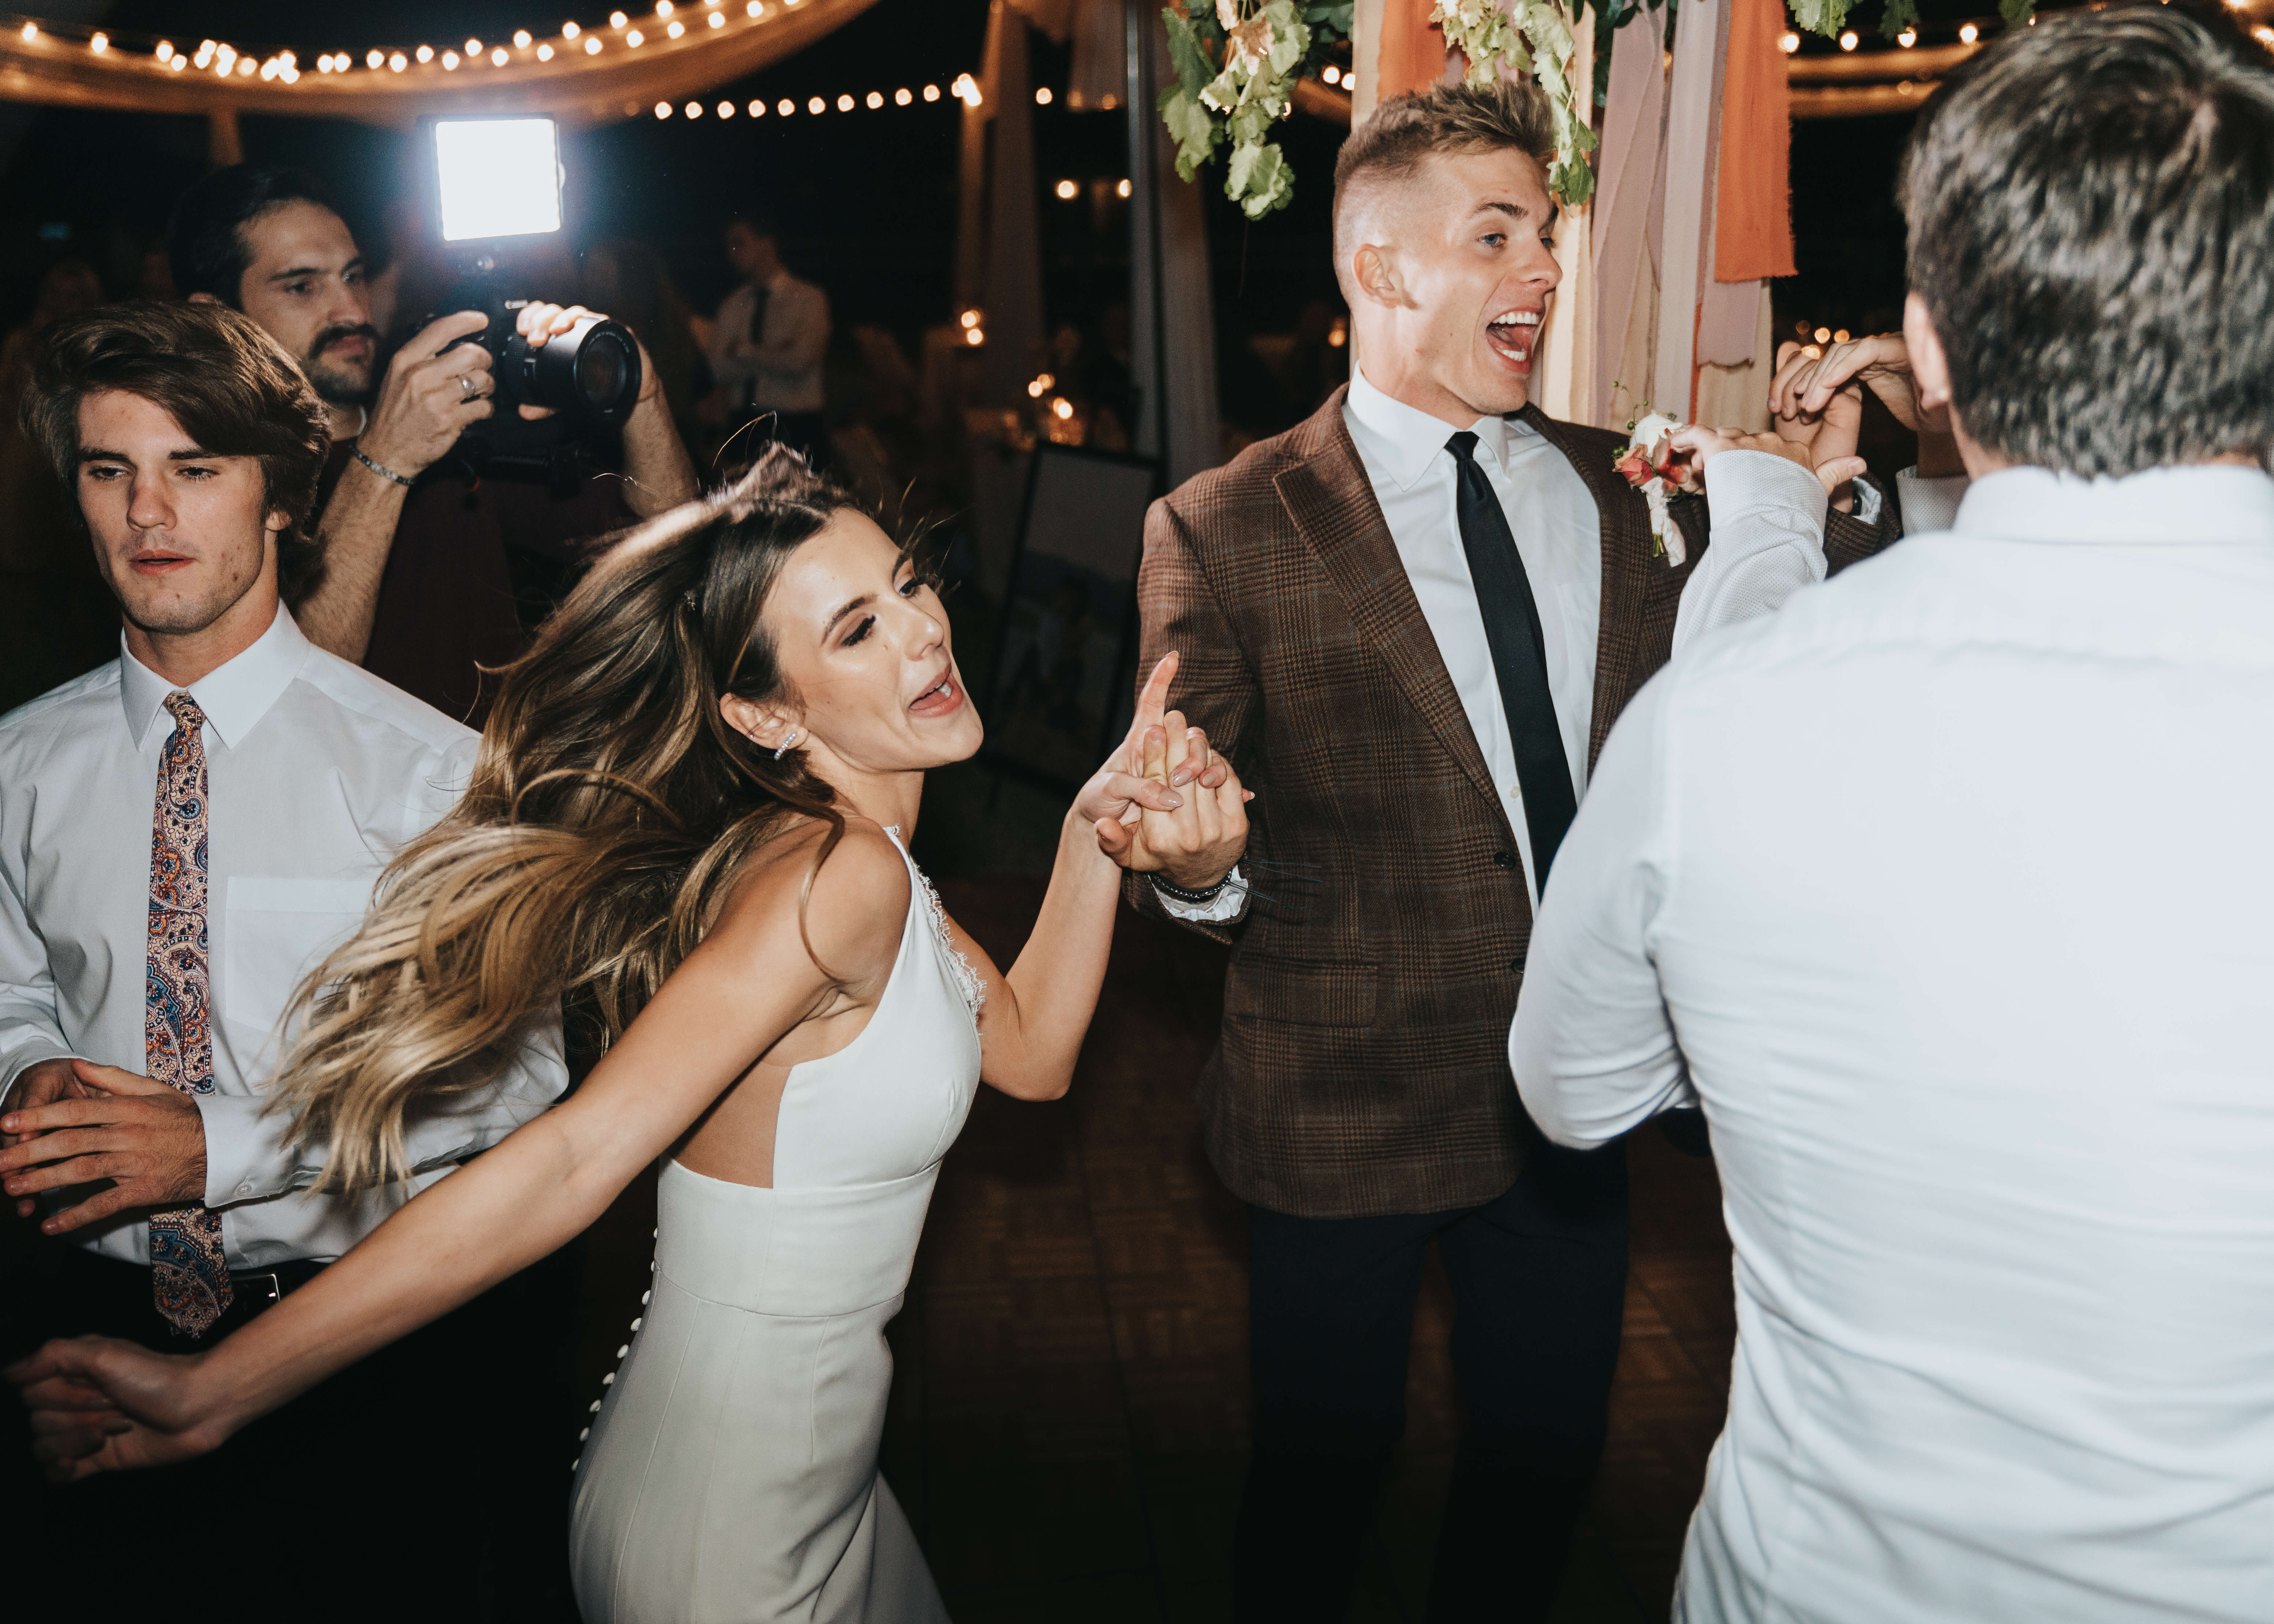 holding hands dancing photo